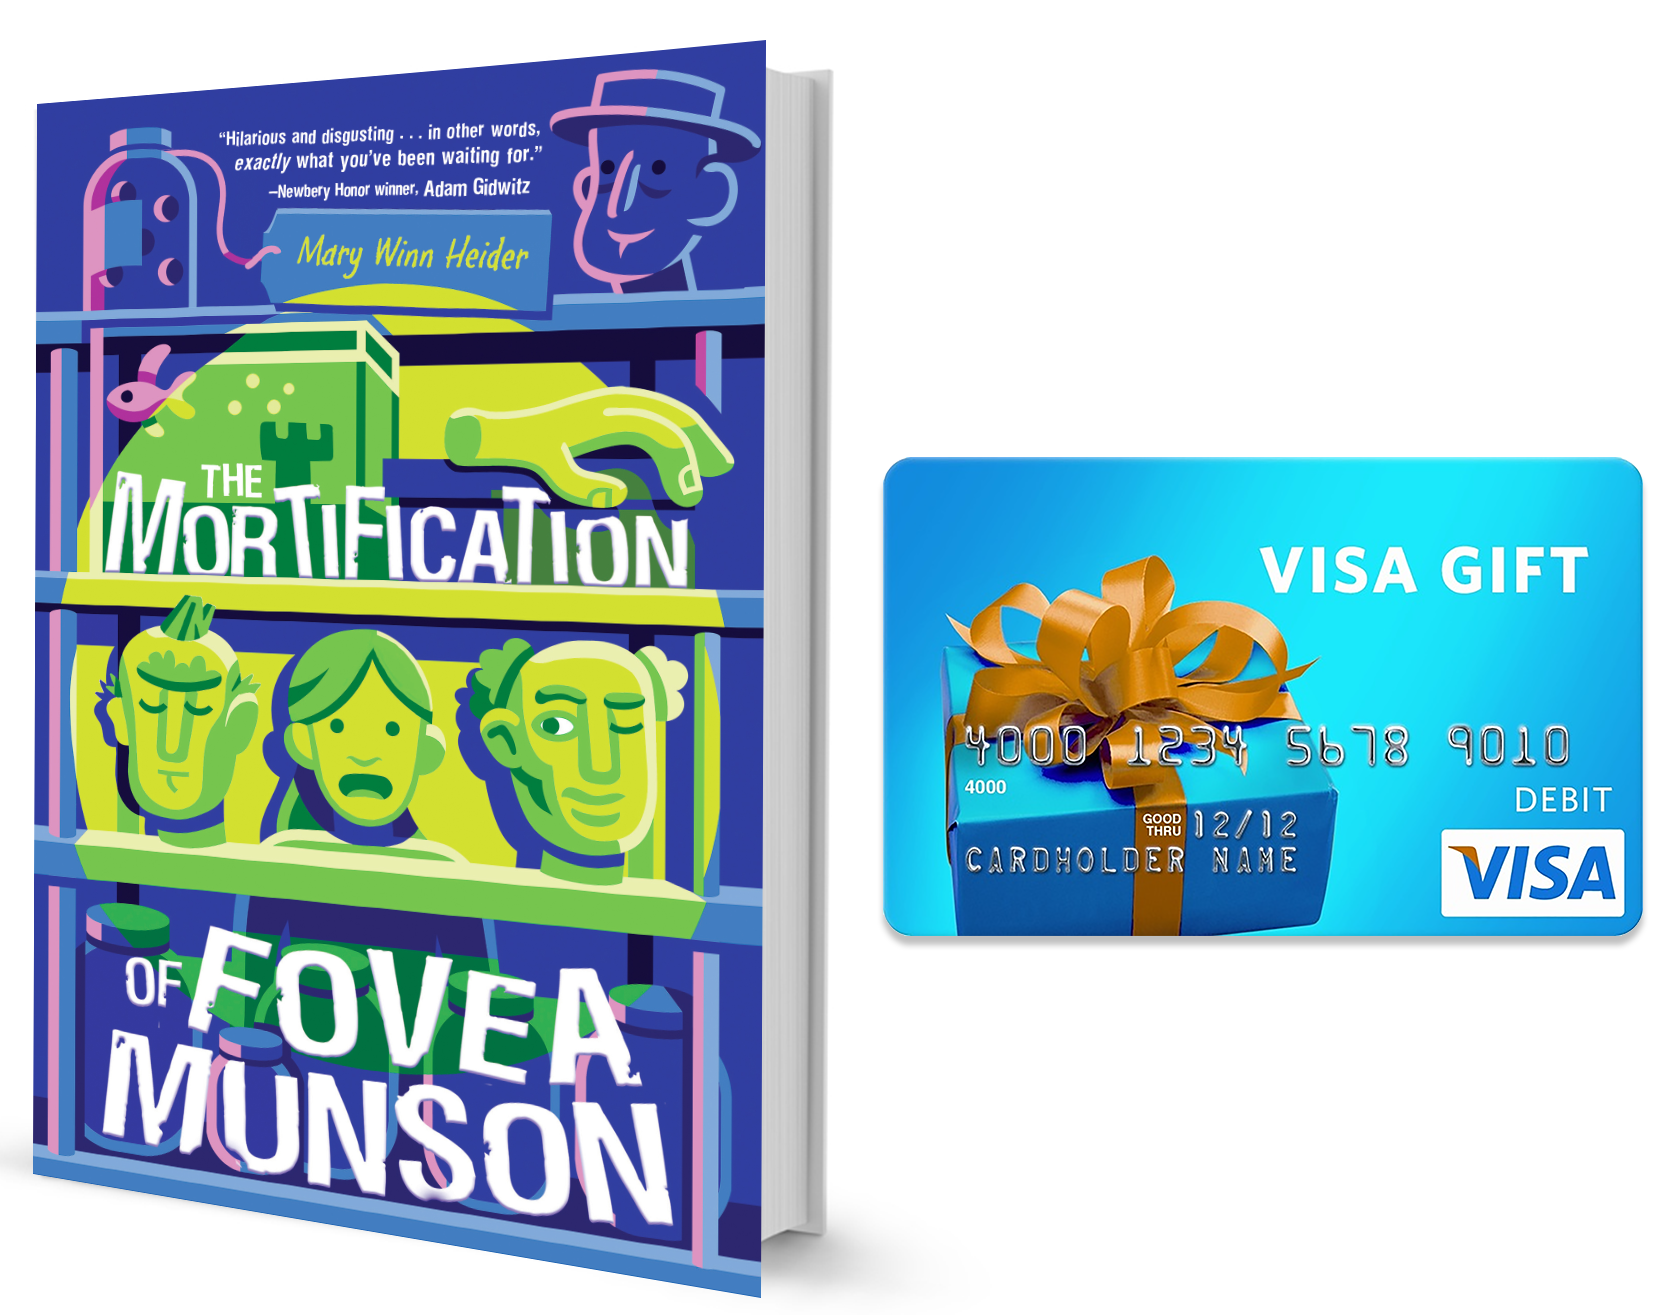 The Mortification of Fovea Munson #MortificationOfFoveaMunson #book #giveaway #DisneyBooks #ad